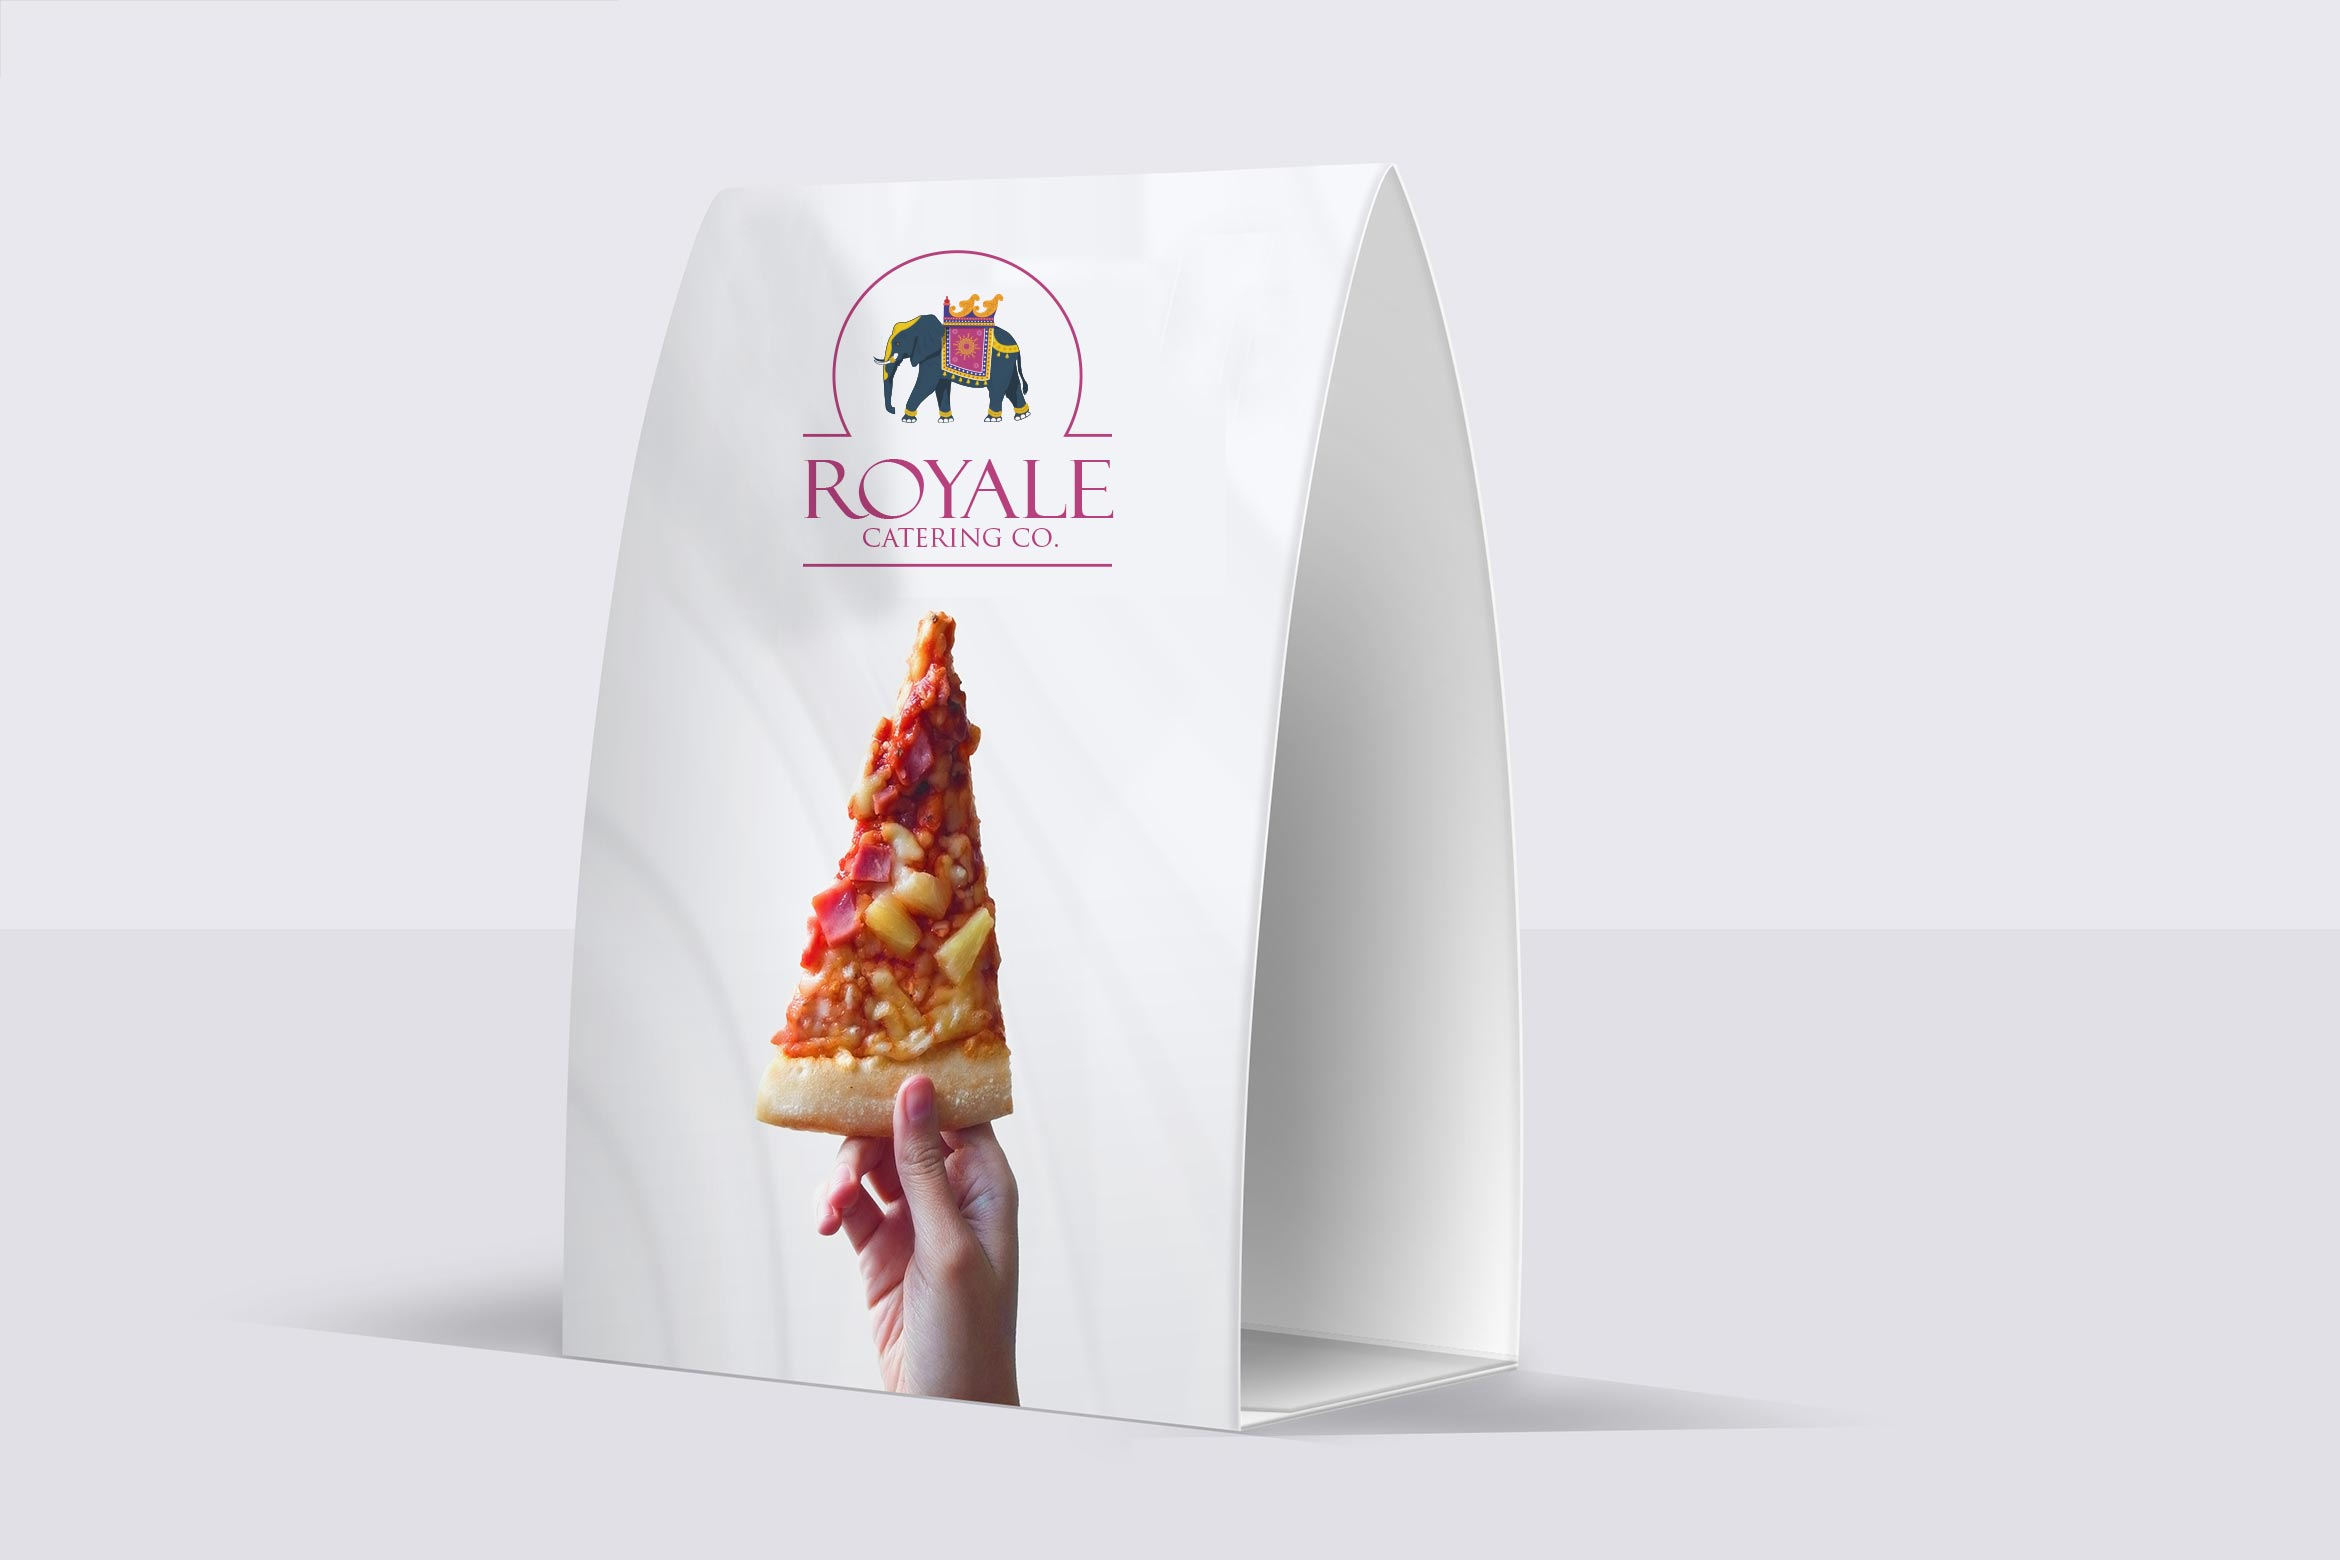 royal catering design